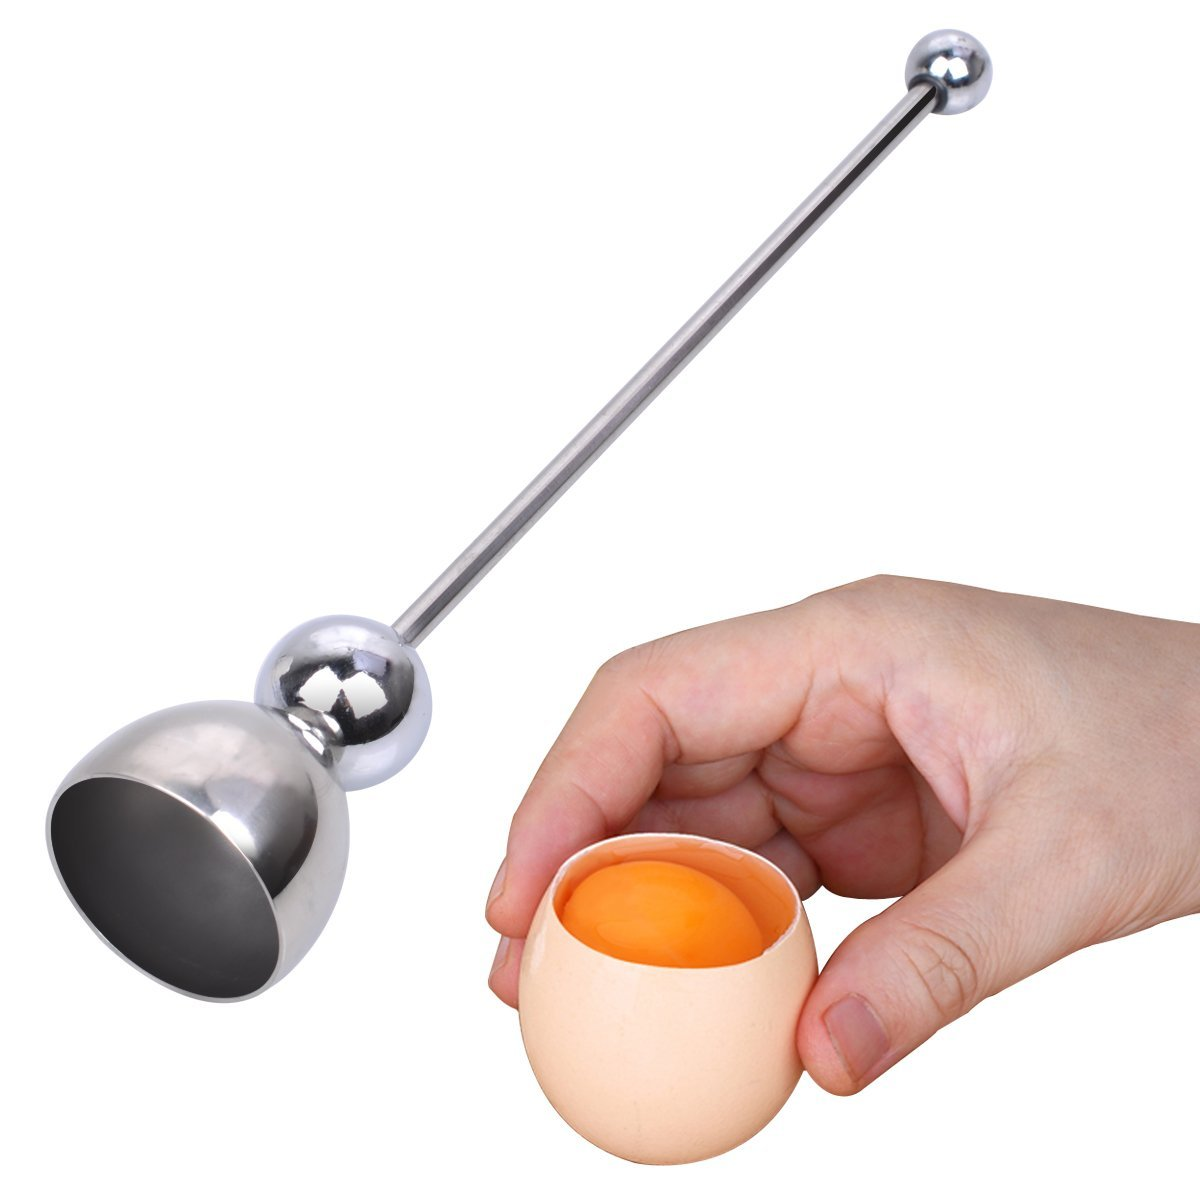 PROKITCHEN Eggshell Topper Cutter Remover Stainless Steel Egg Shell Cracker Opener Separator for Removing Raw,Soft or Hard Boiled Eggs